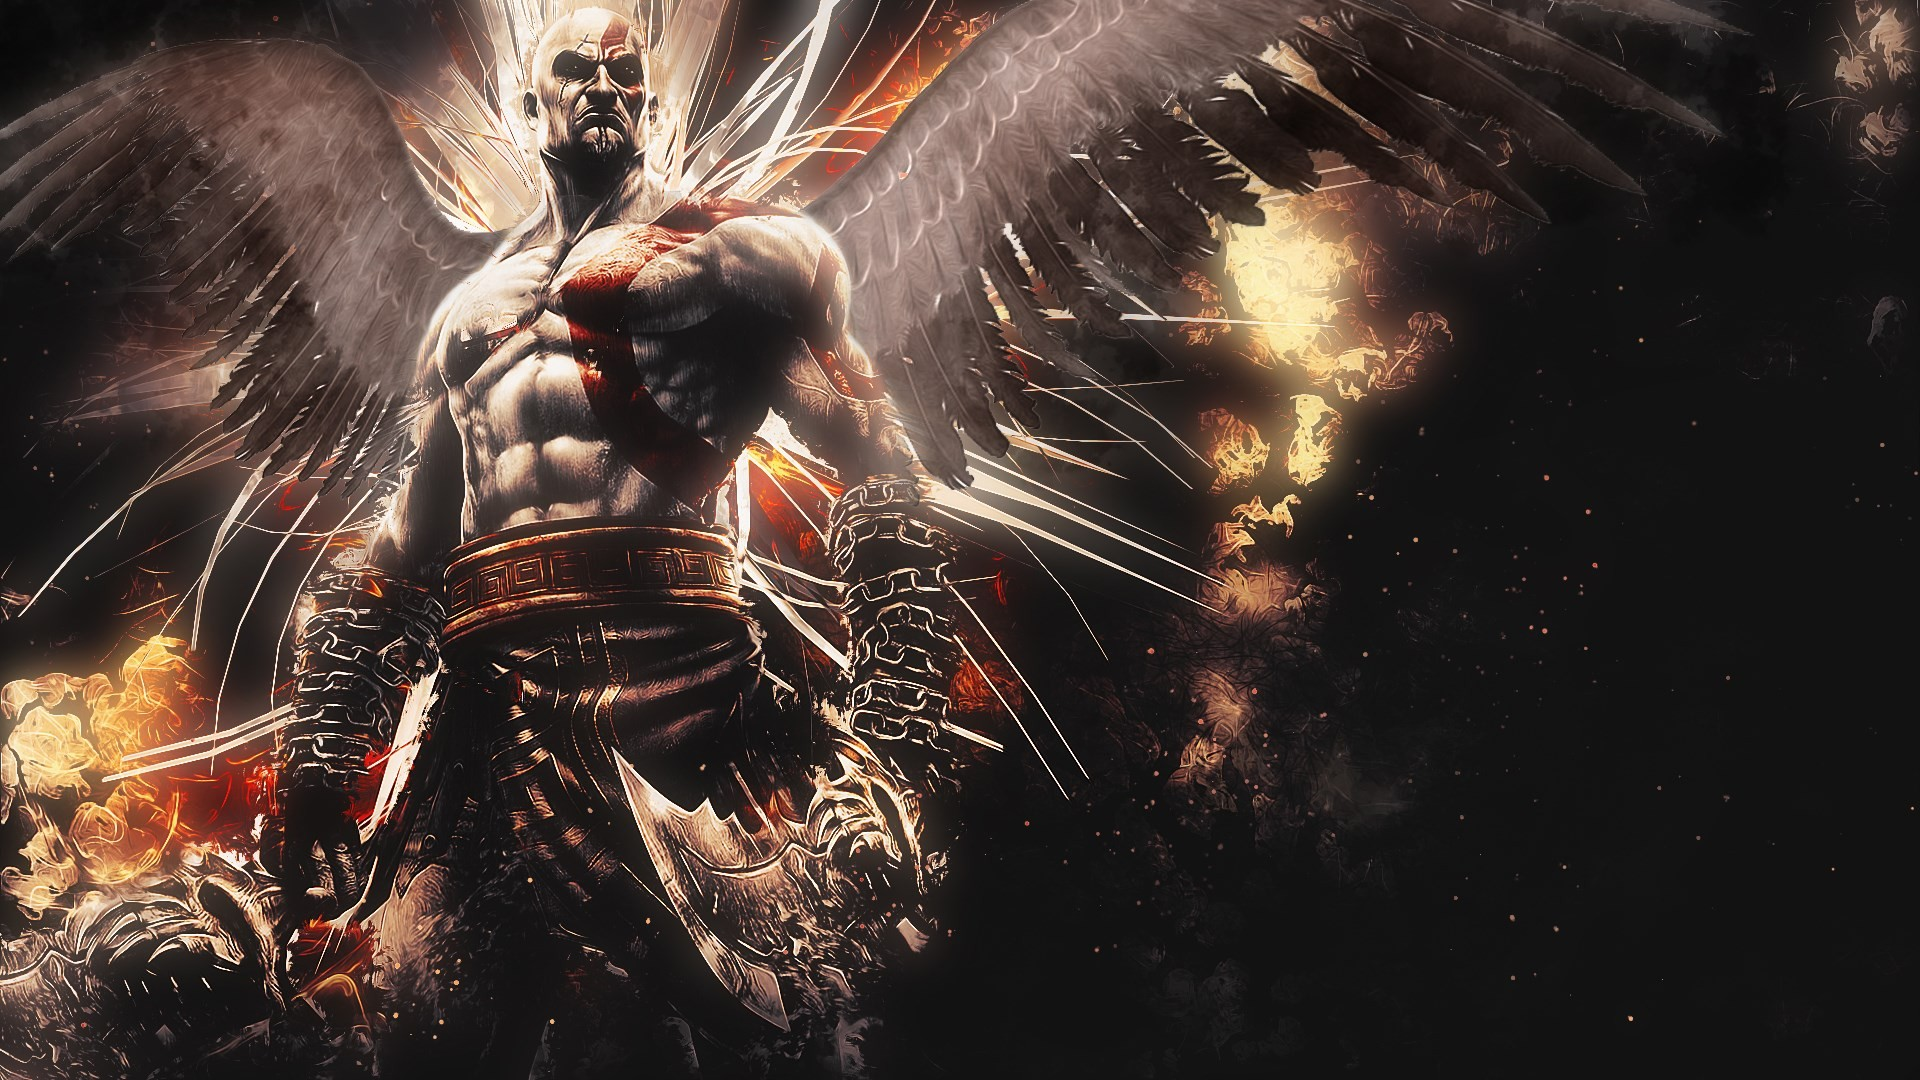 kratos cool game wallpaper